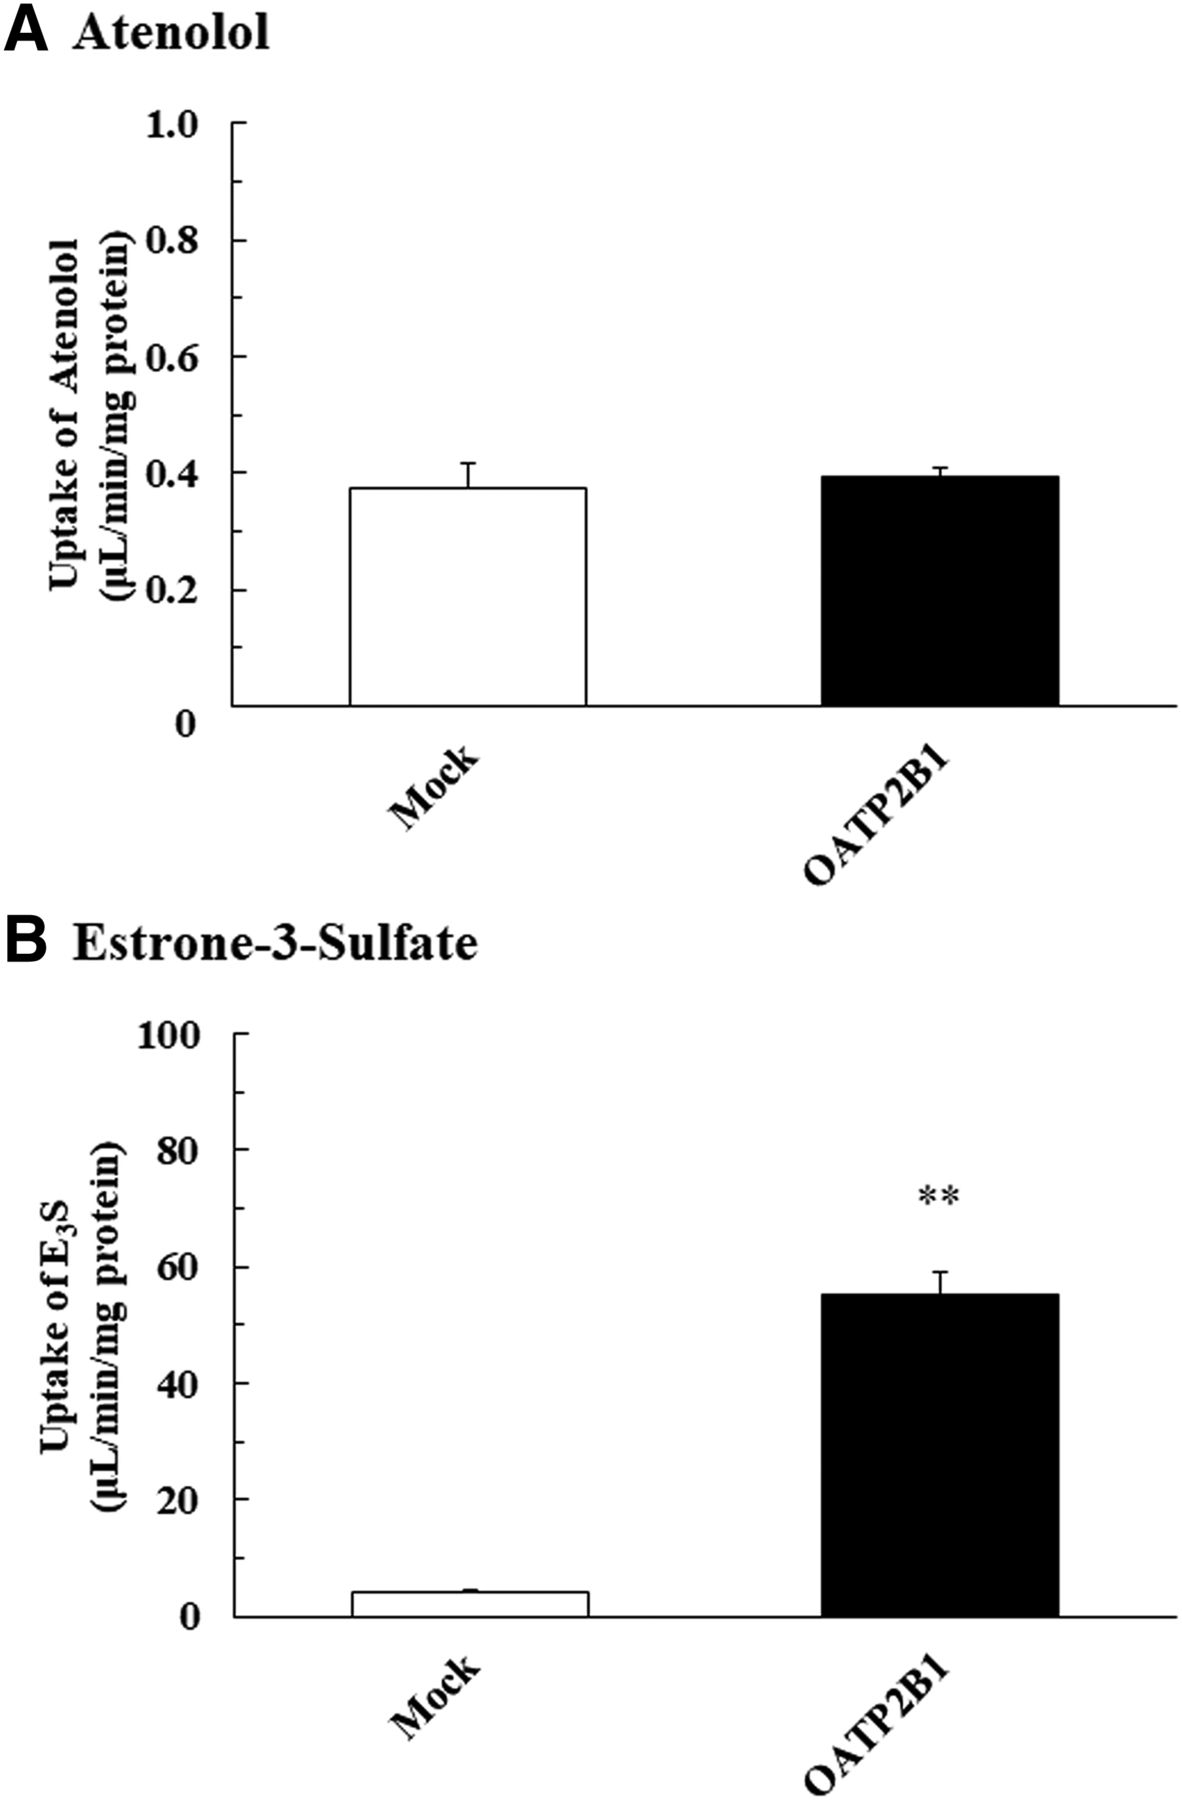 Effect of Osmolality on the Pharmacokinetic Interaction between